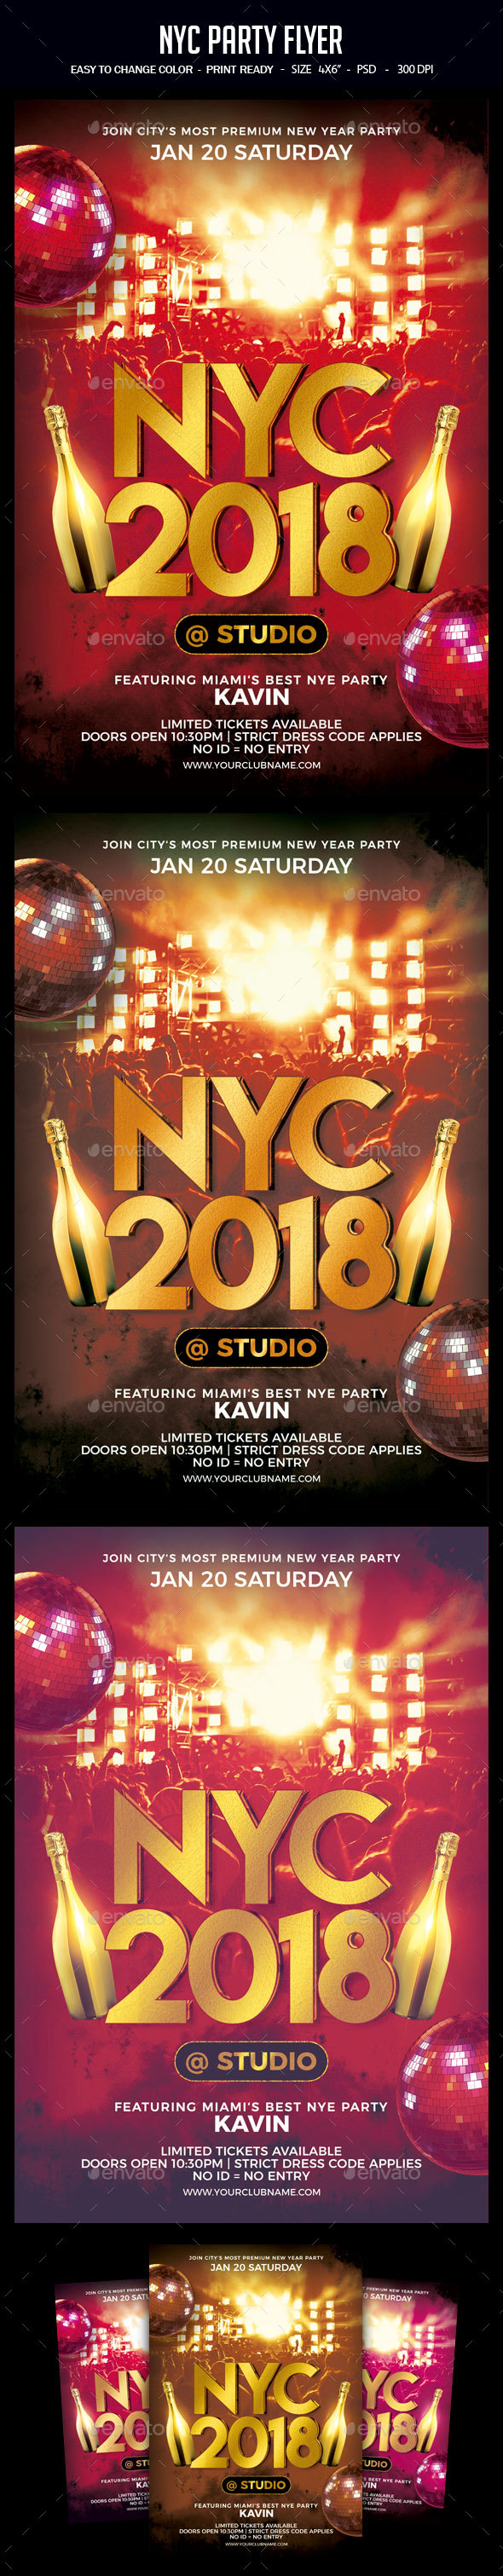 NYC Party Flyer - Clubs & Parties Events